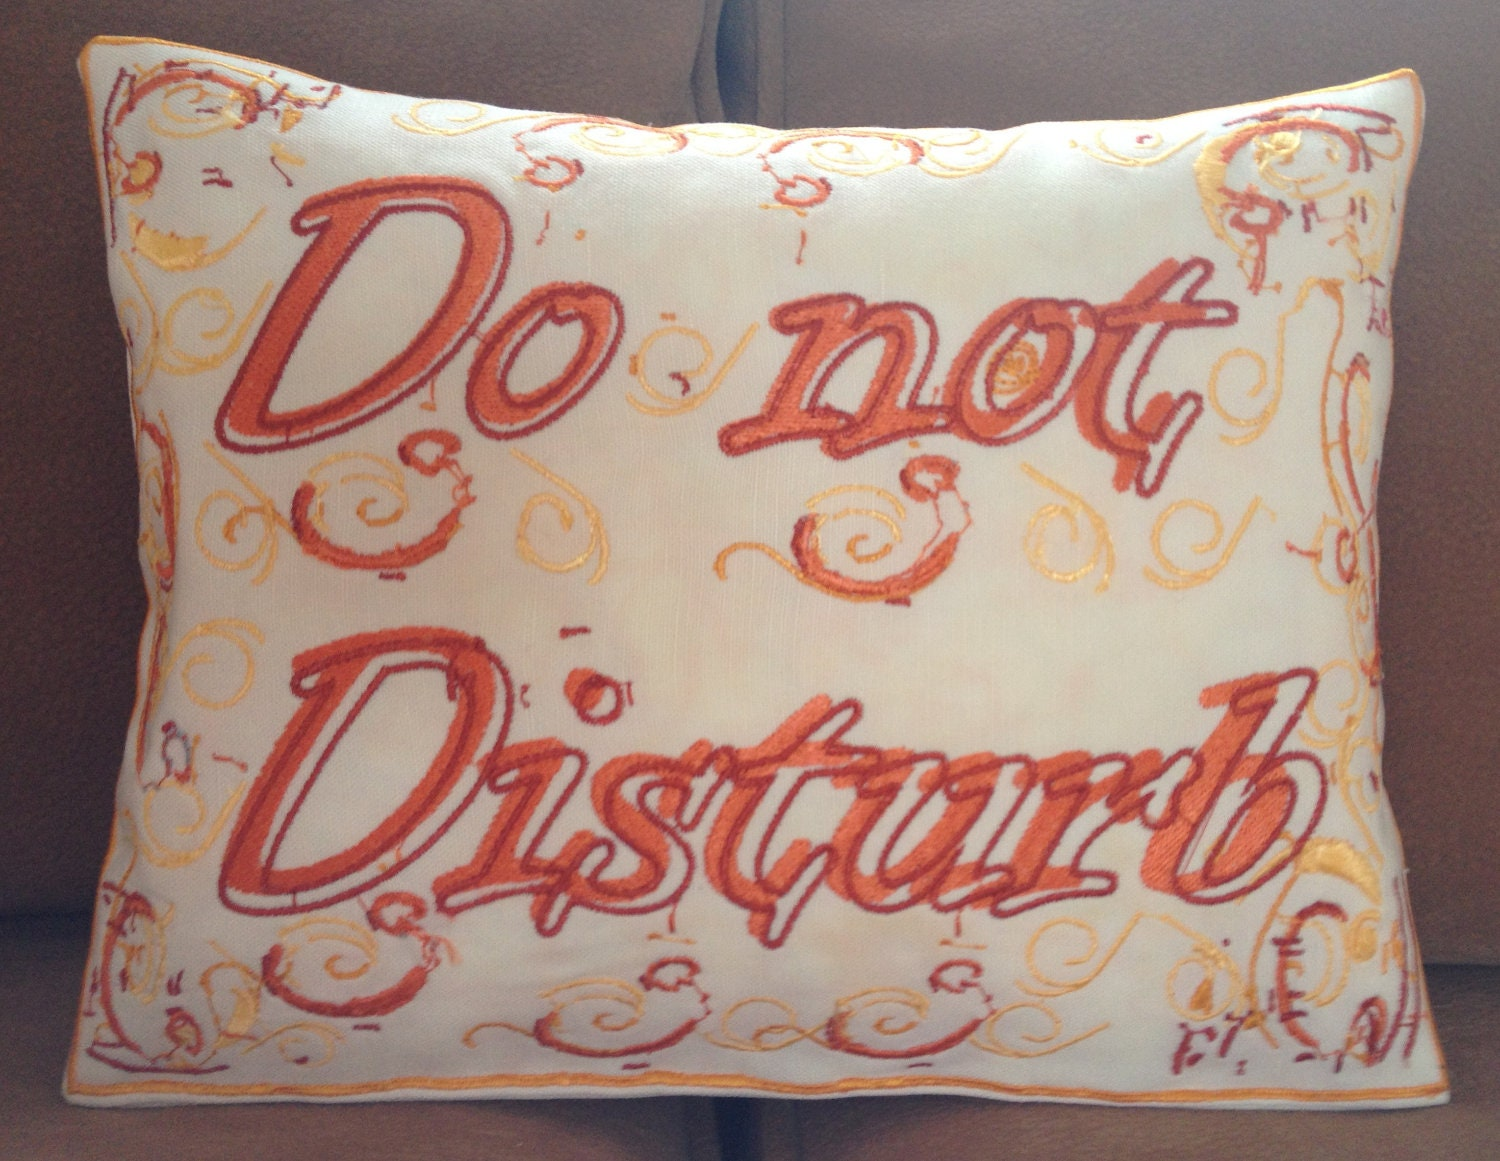 Do not Disturb, Artistic Embroidery Throw Cushion